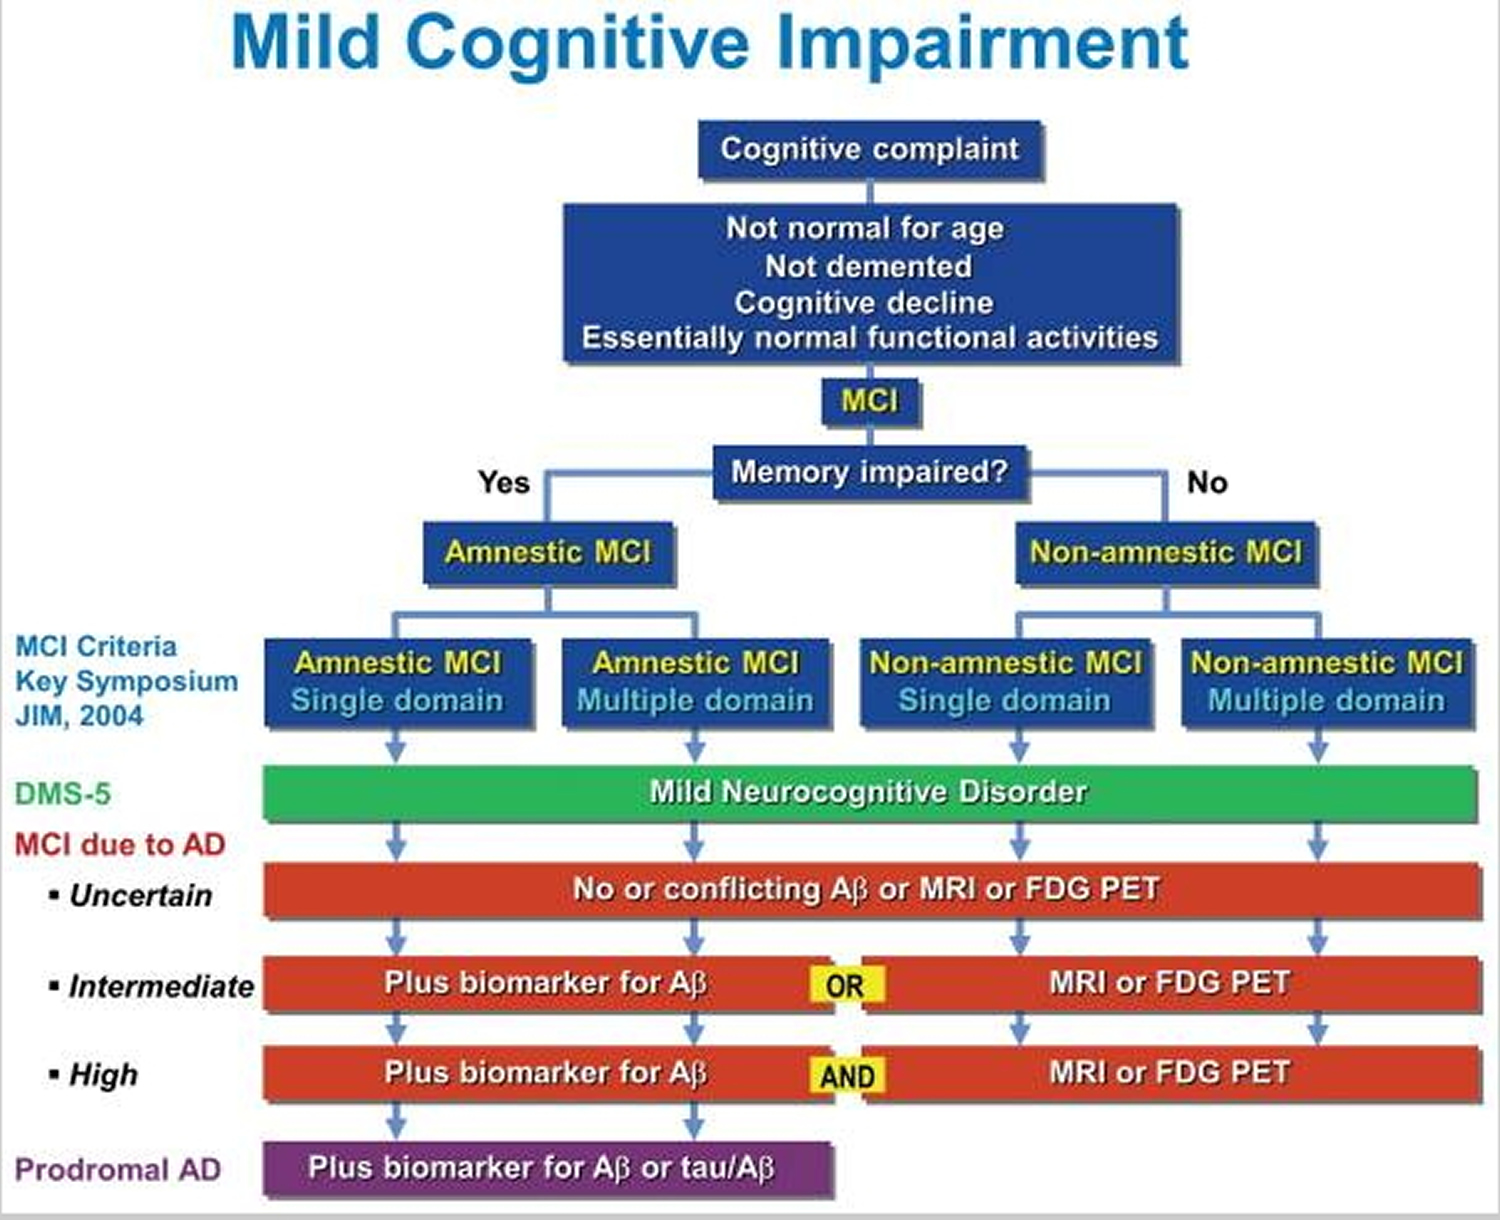 Mild cognitive impairment diagnostic criteria